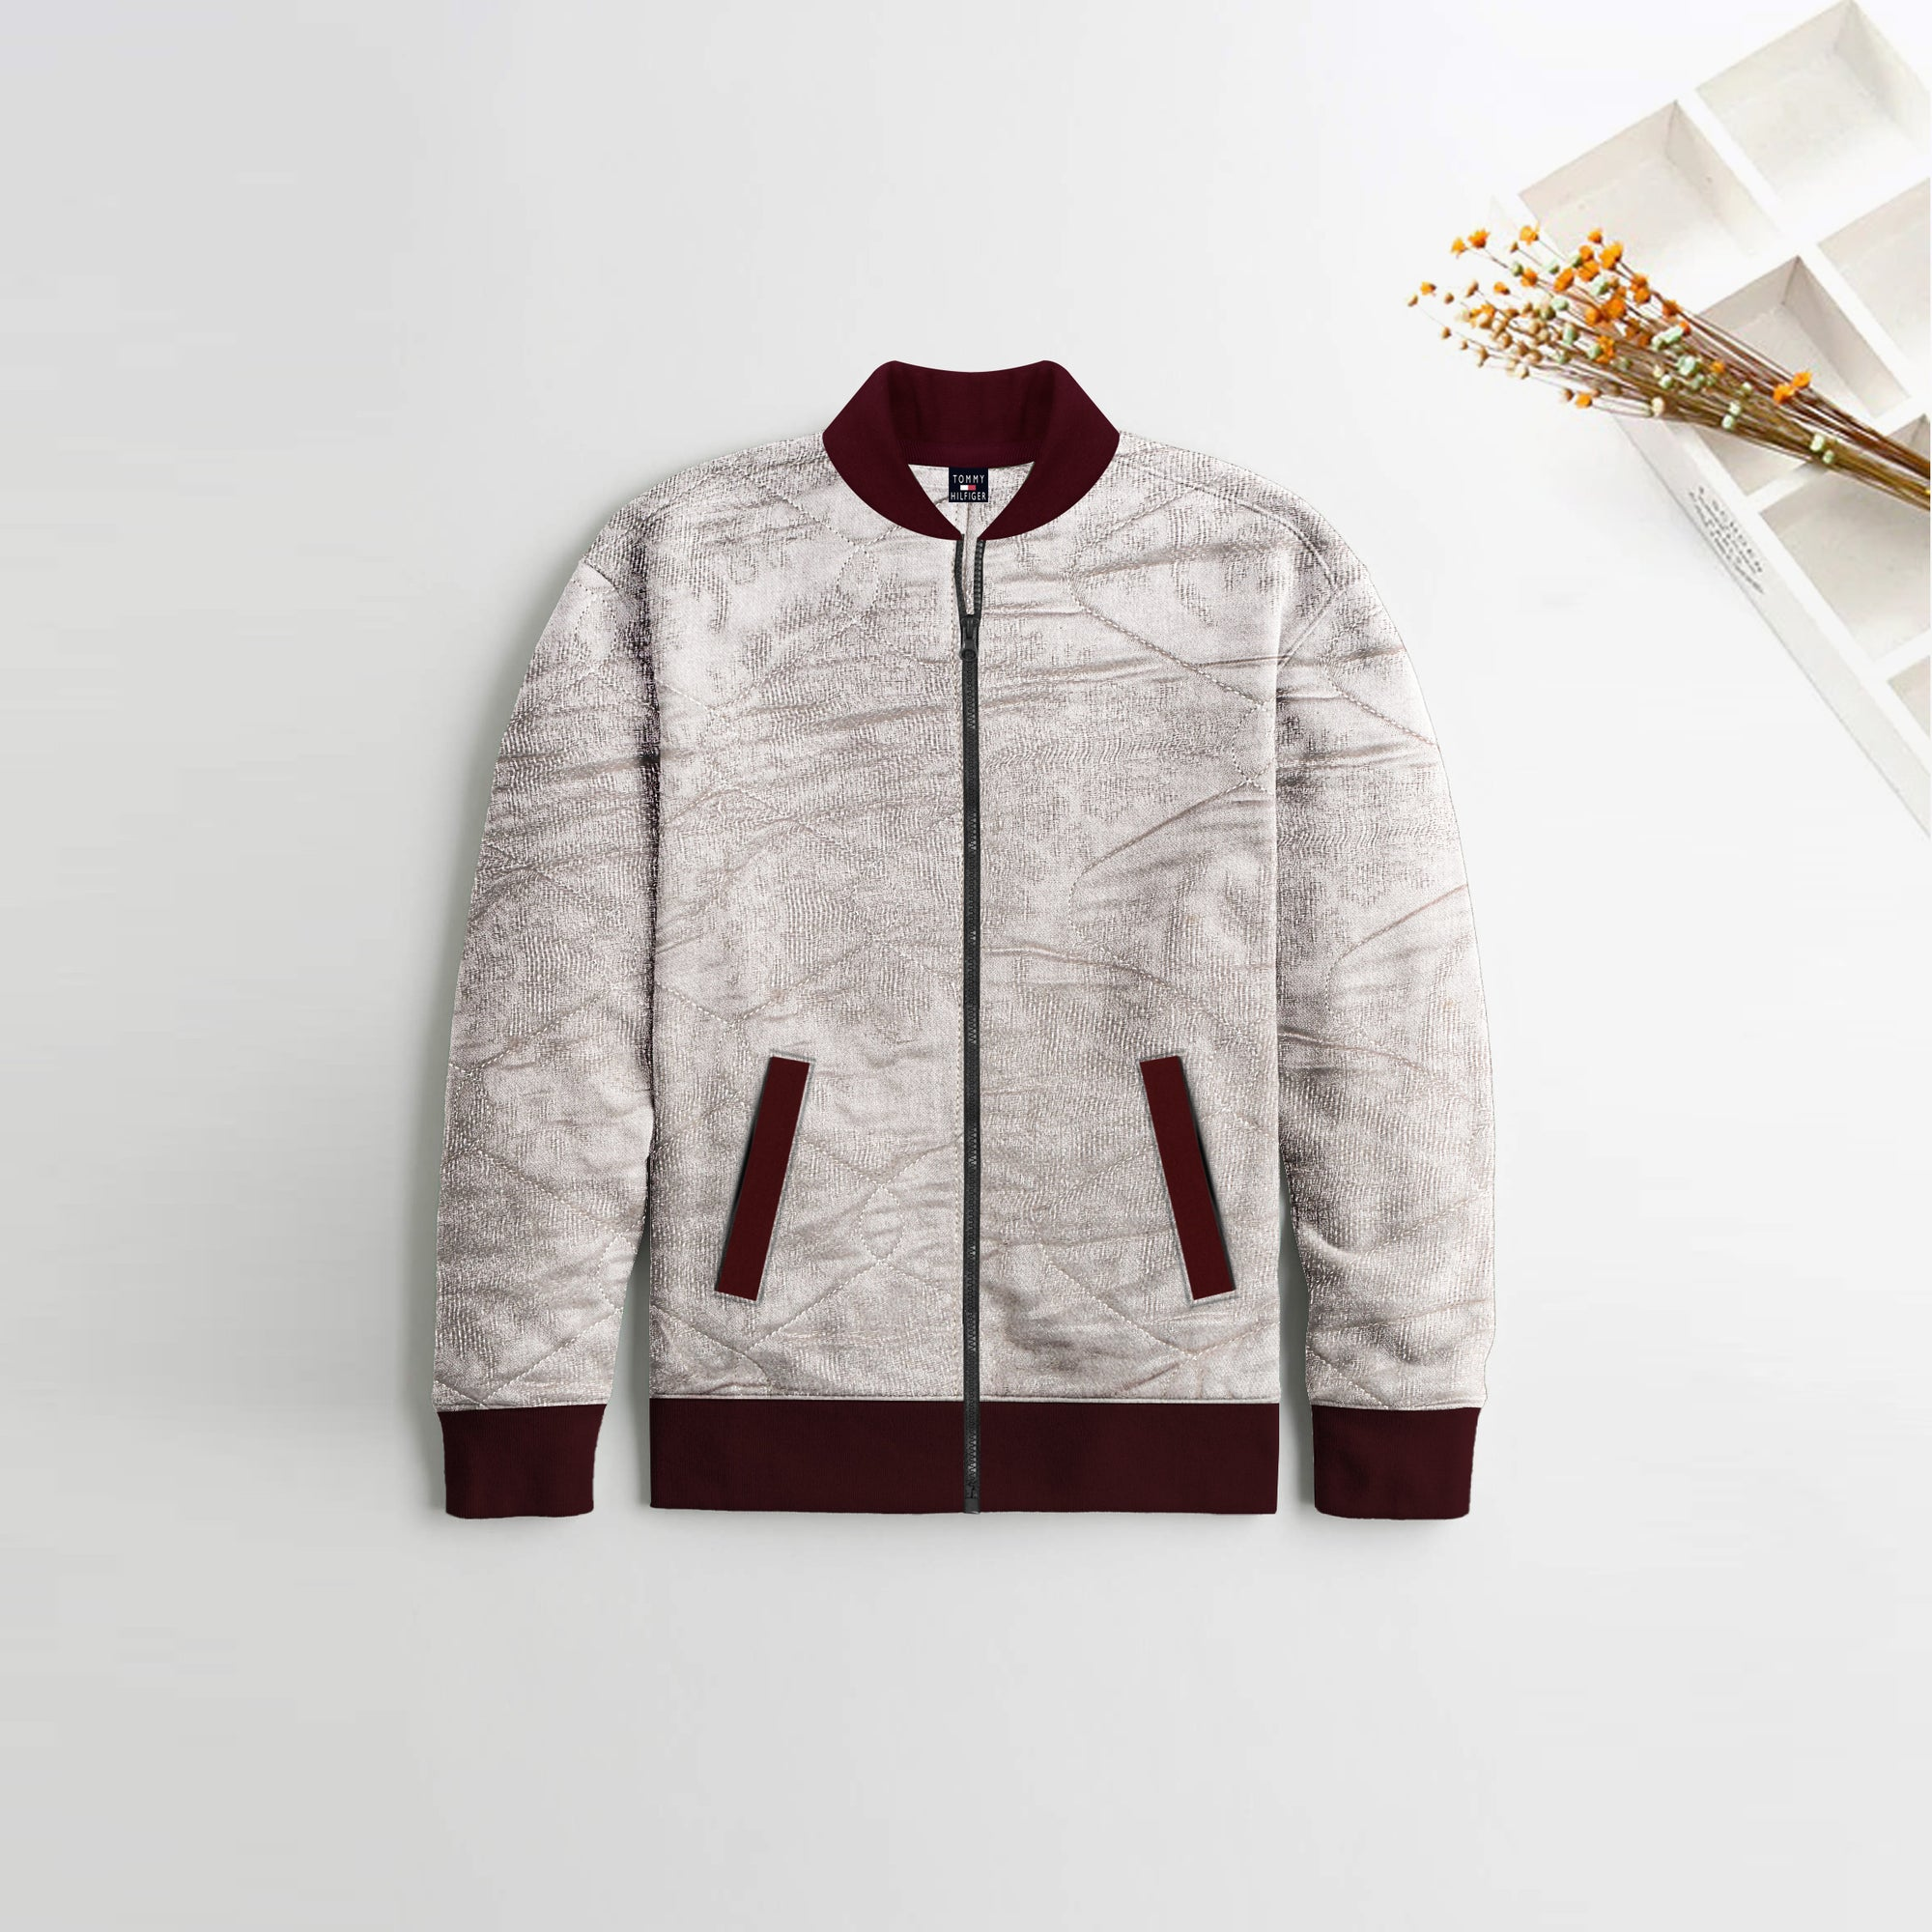 TH Quilted Zipper Baseball Jacket For Kids-Light Skin With Burgundy Contrast-NA12125